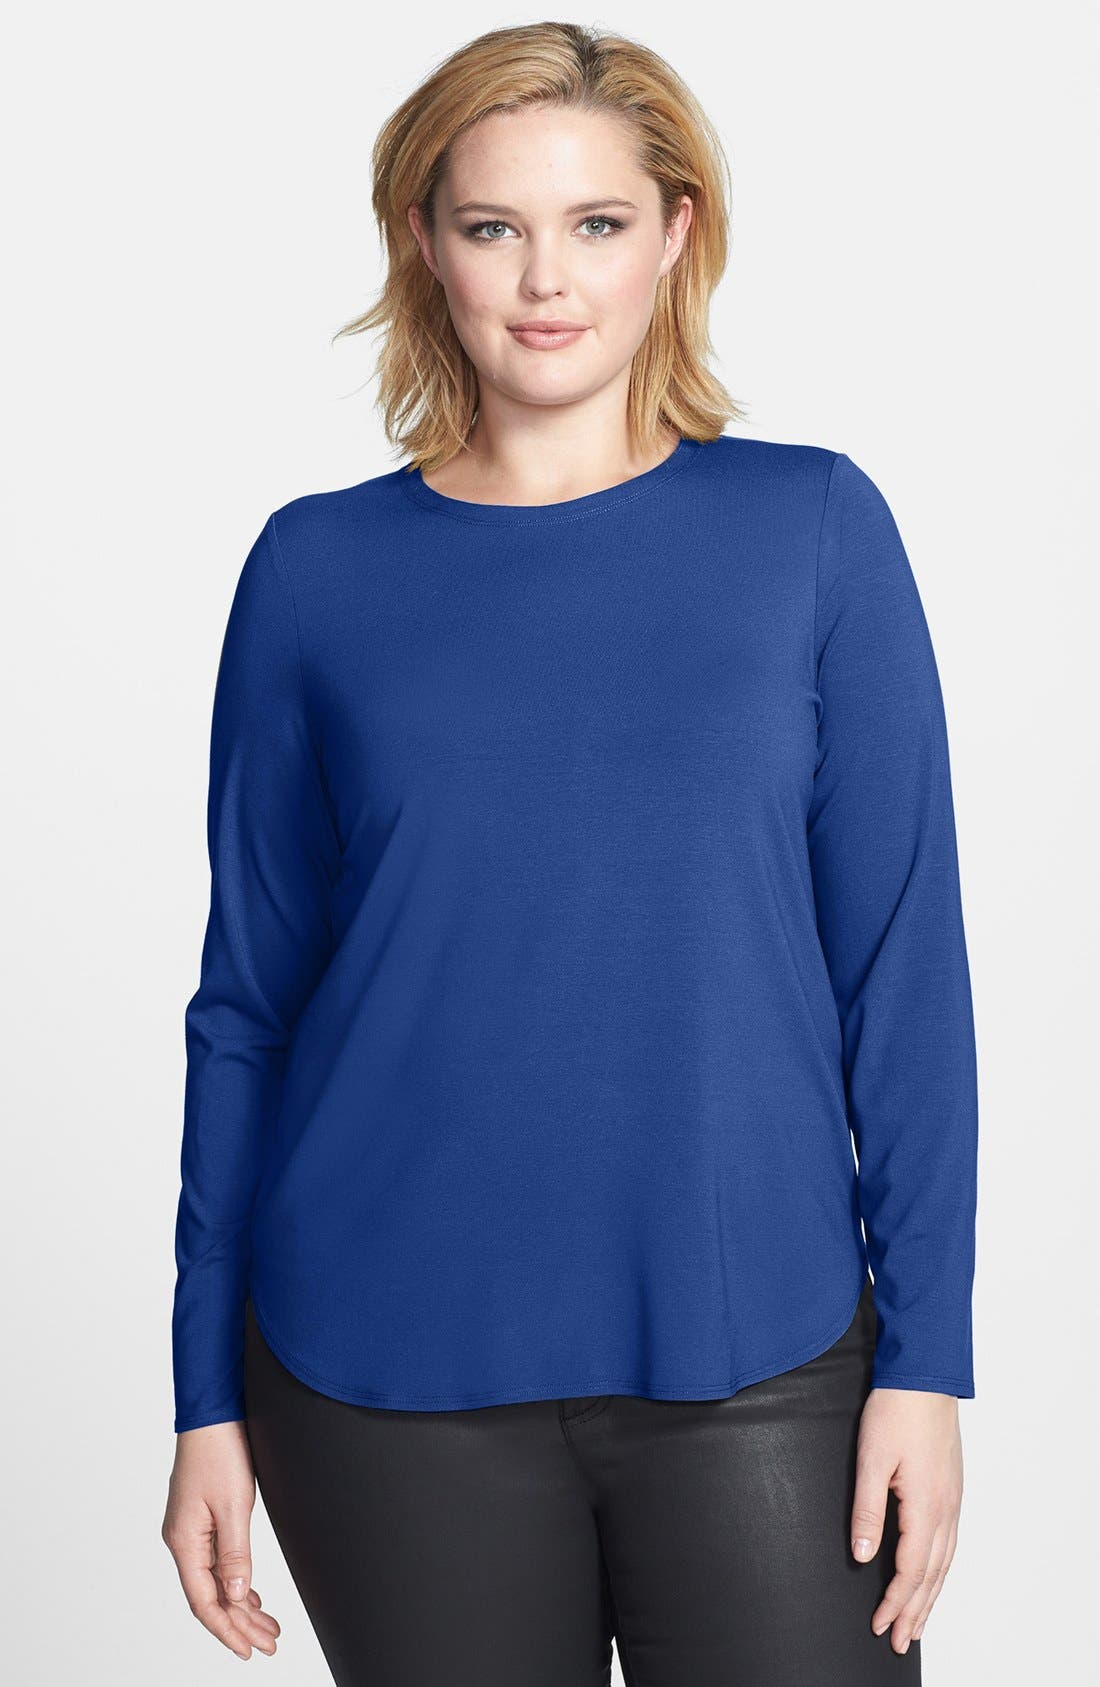 Alternate Image 1 Selected - Eileen Fisher Jersey Top (Plus Size)